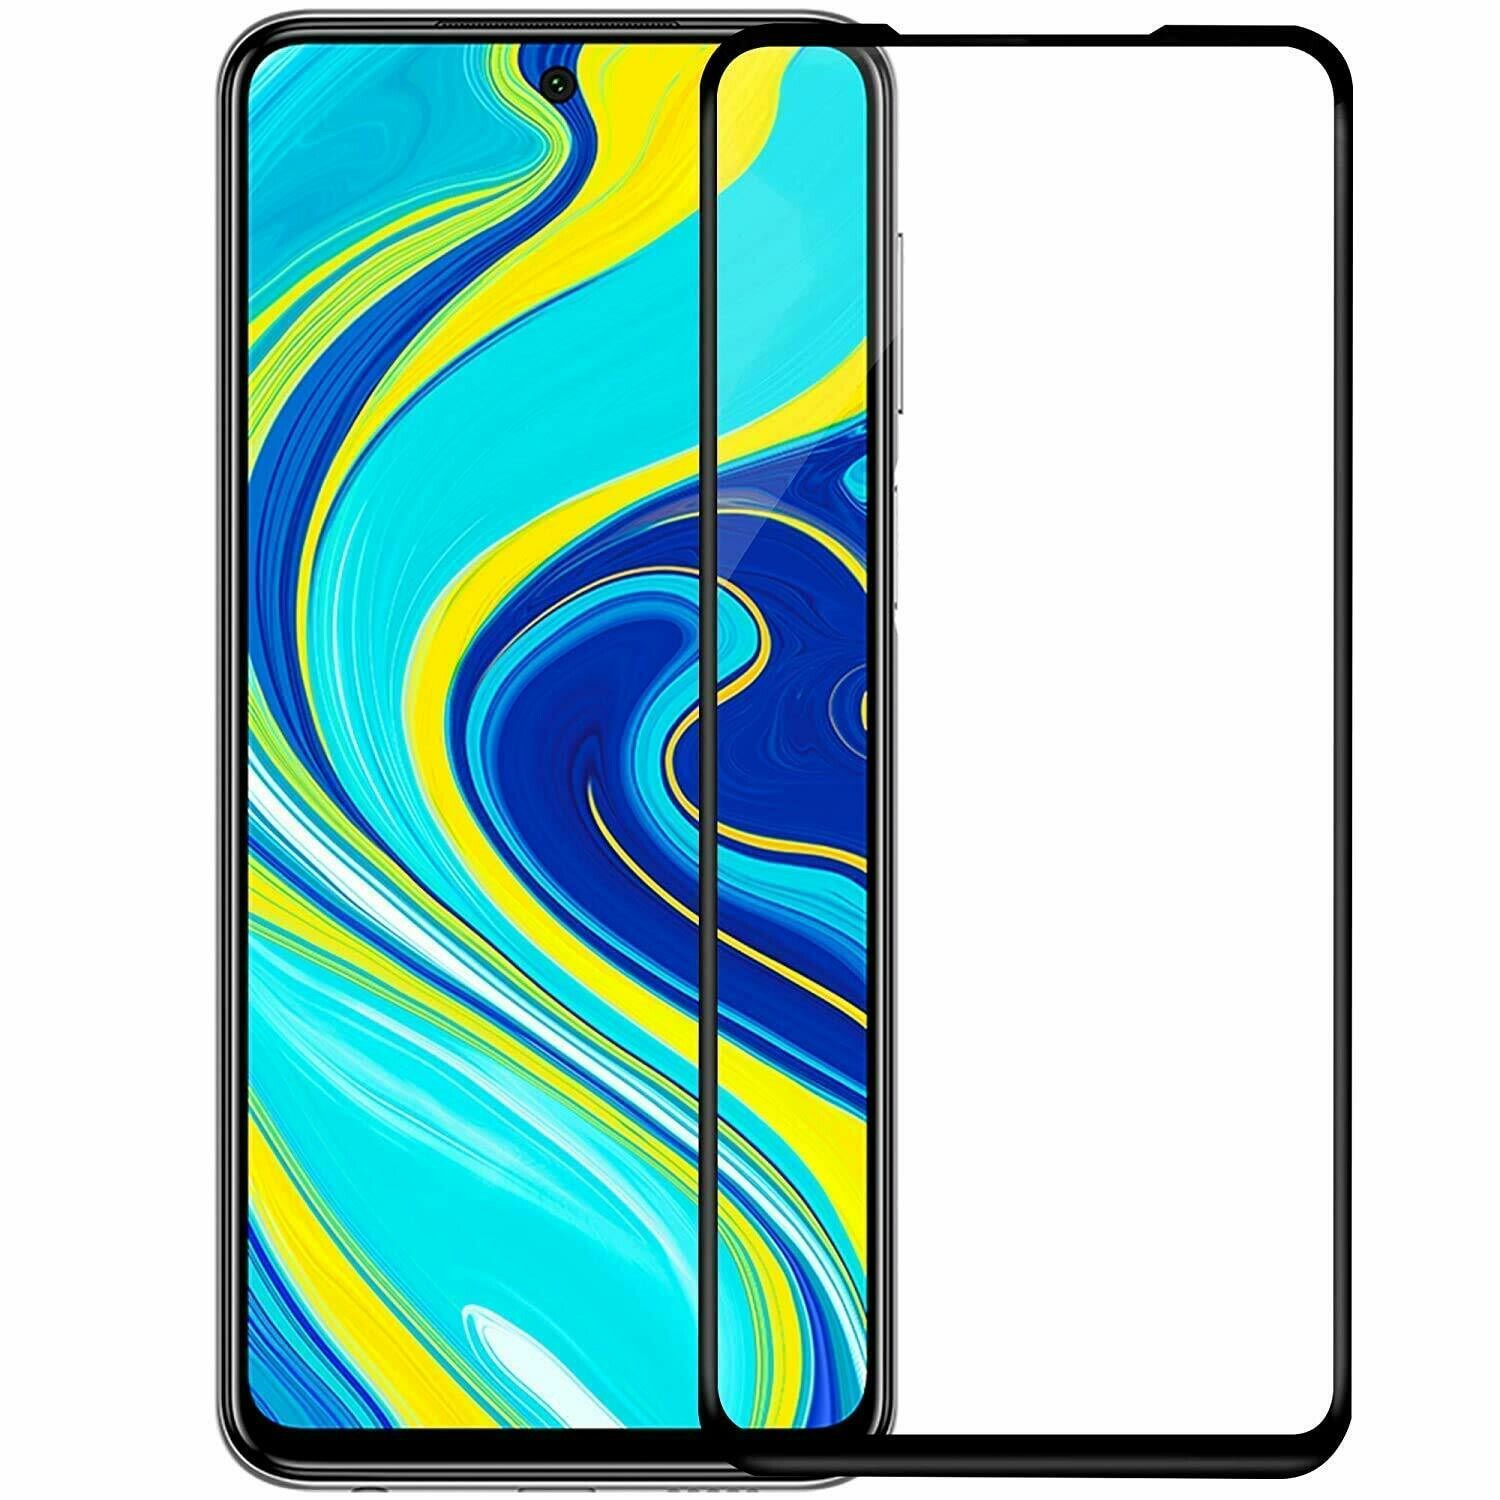 Edge 11D Tempered Glass Screen Protector for Xiaomi Poco X2/ Redmi Note 9 pro/Pro Max with installation kit